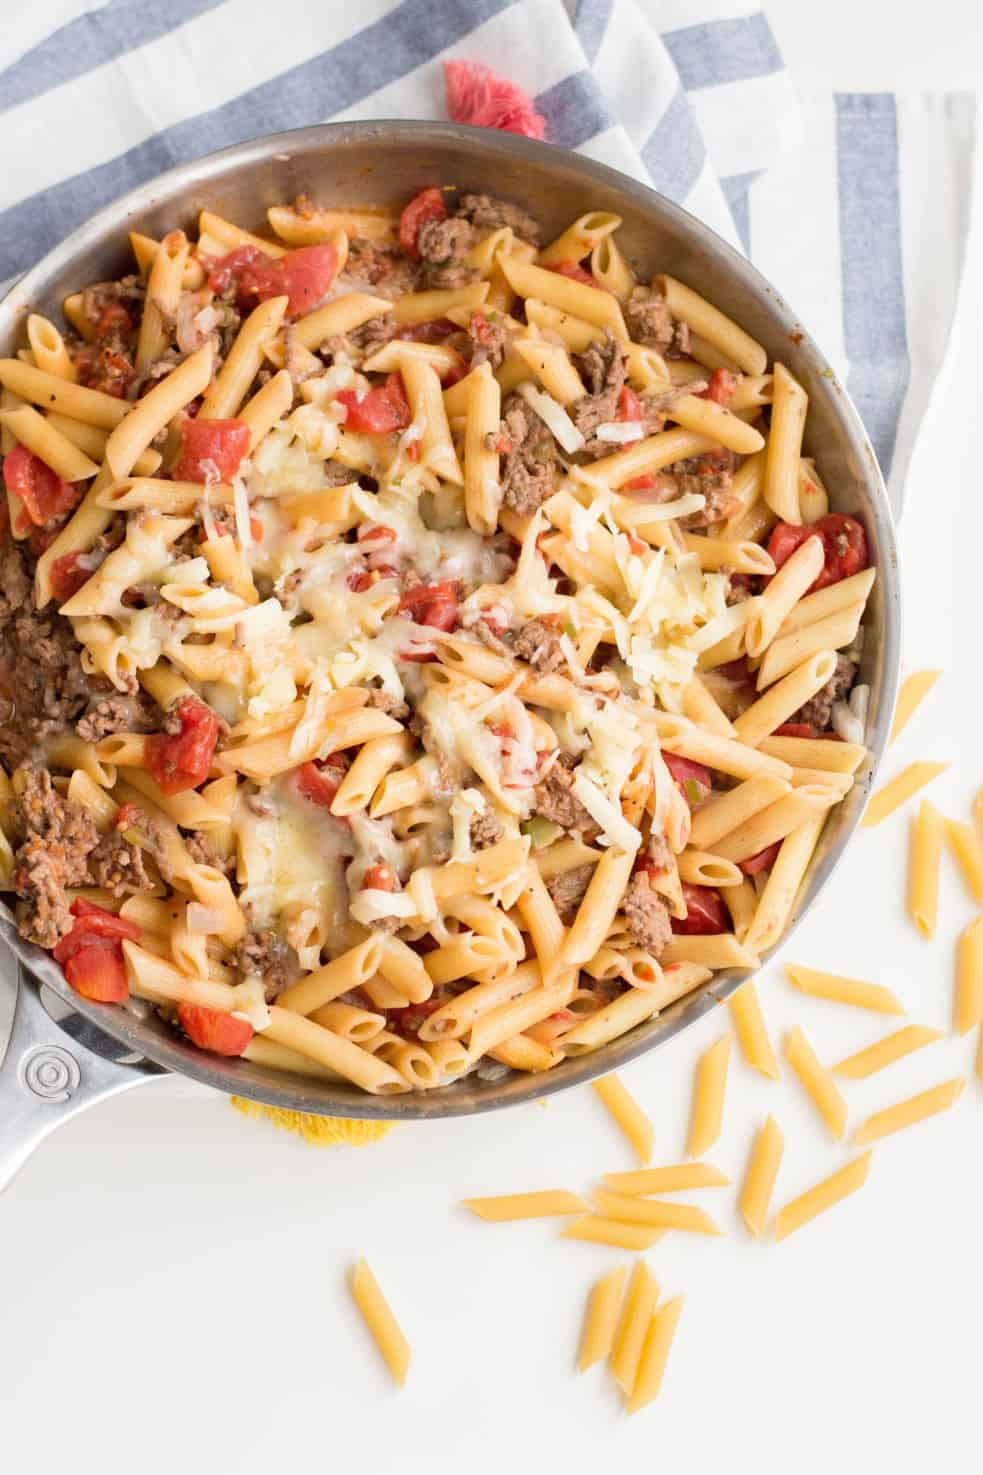 Cheeseburger pasta skillet with melted cheese